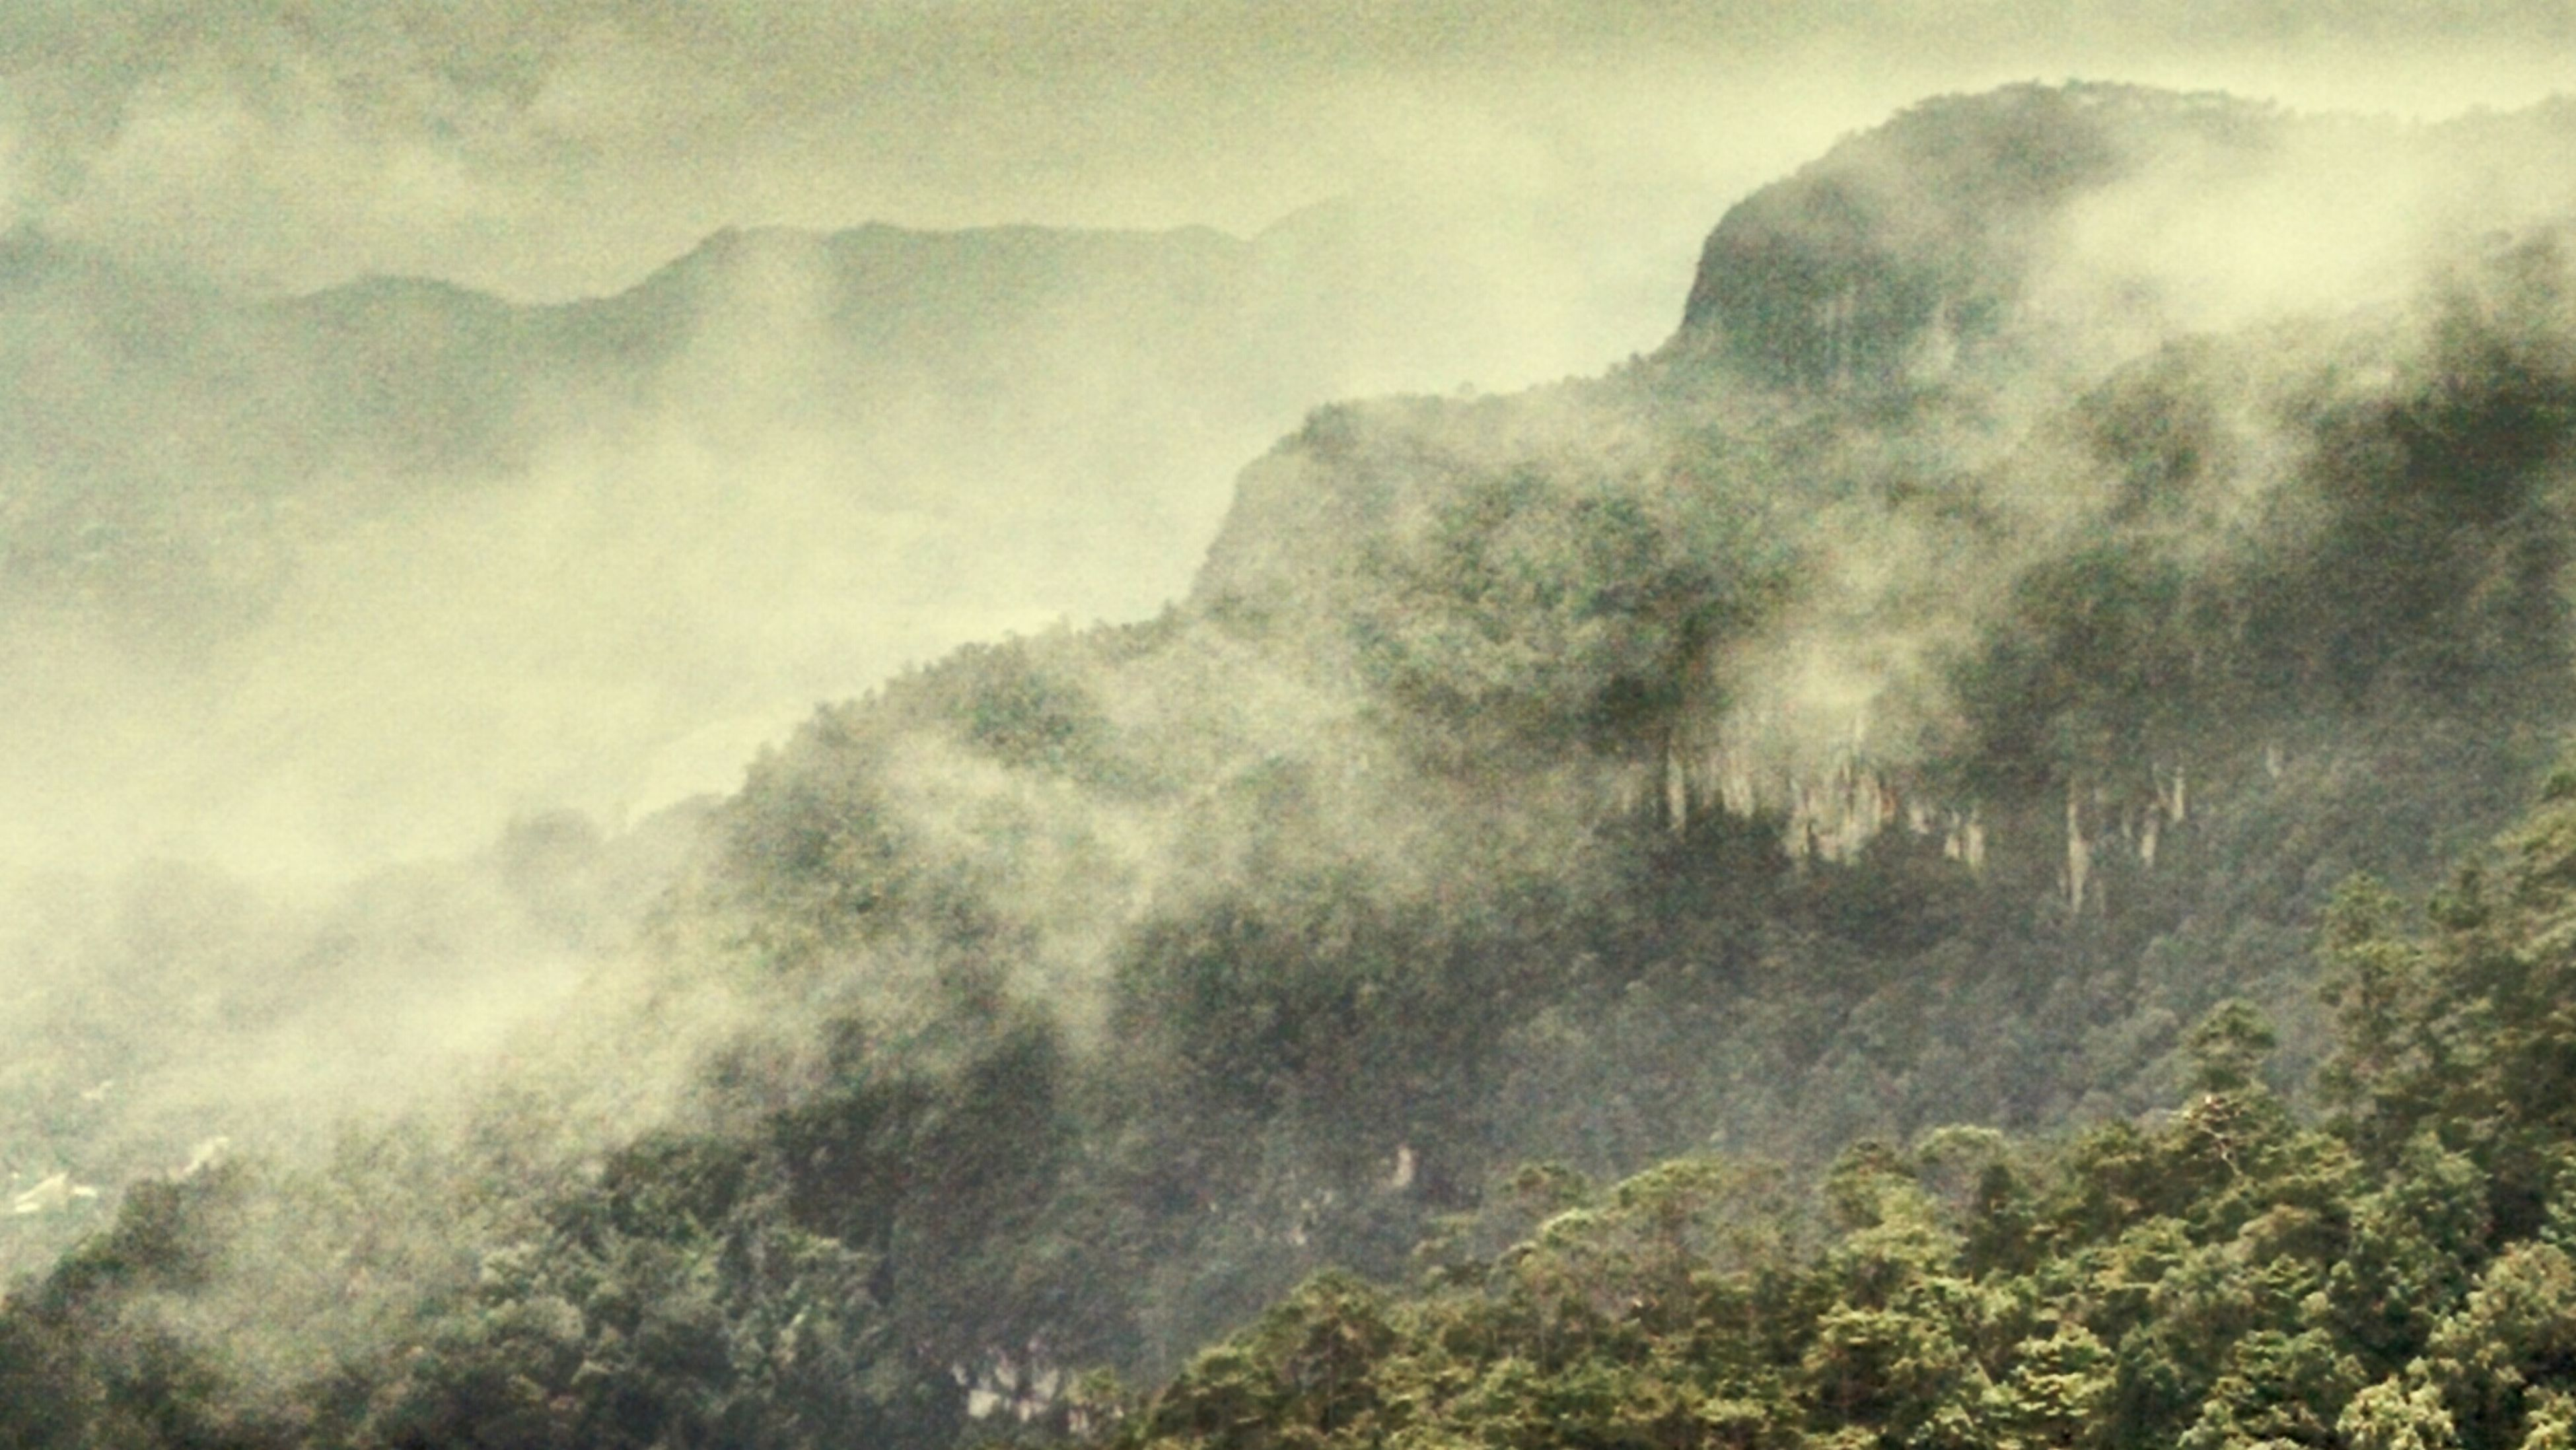 mountain, scenics, fog, tree, foggy, tranquil scene, beauty in nature, tranquility, non-urban scene, weather, nature, mountain range, majestic, cloud - sky, growth, sky, day, geology, remote, physical geography, outdoors, mist, rock formation, woodland, tourism, misty